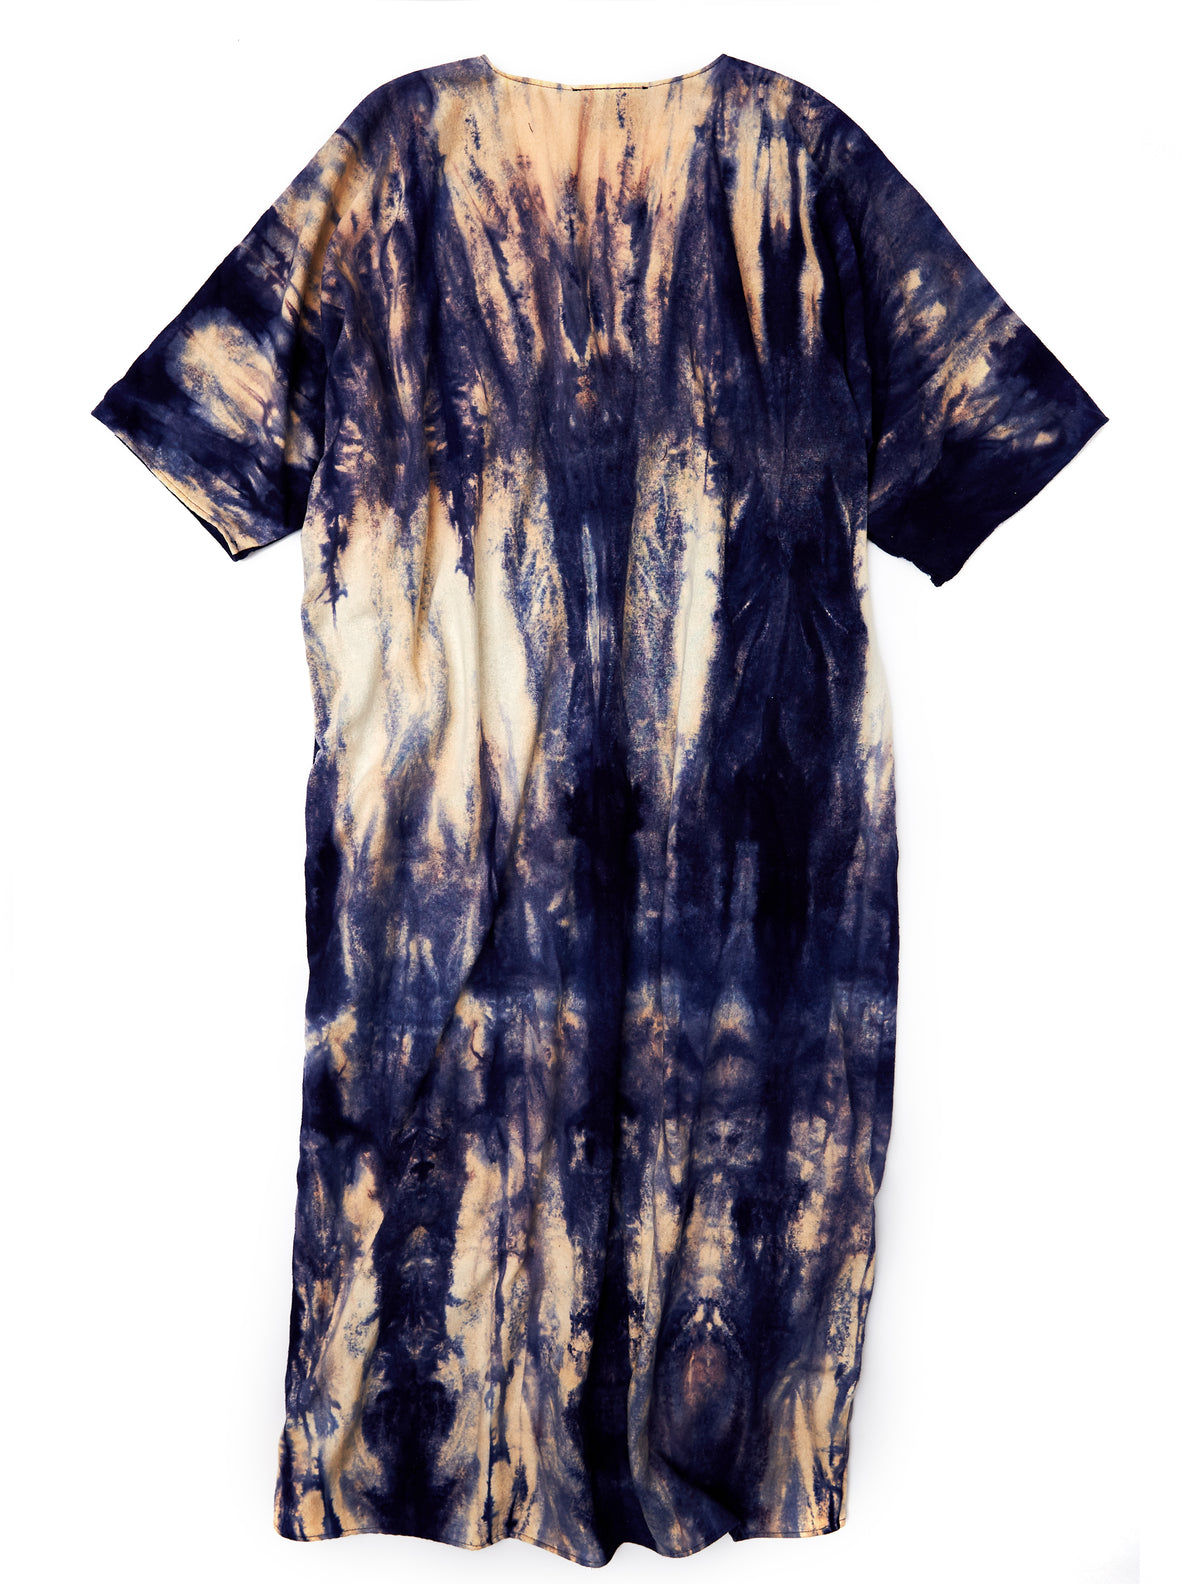 Nico Dress in Navy Raw Silk - riverside tool & dye